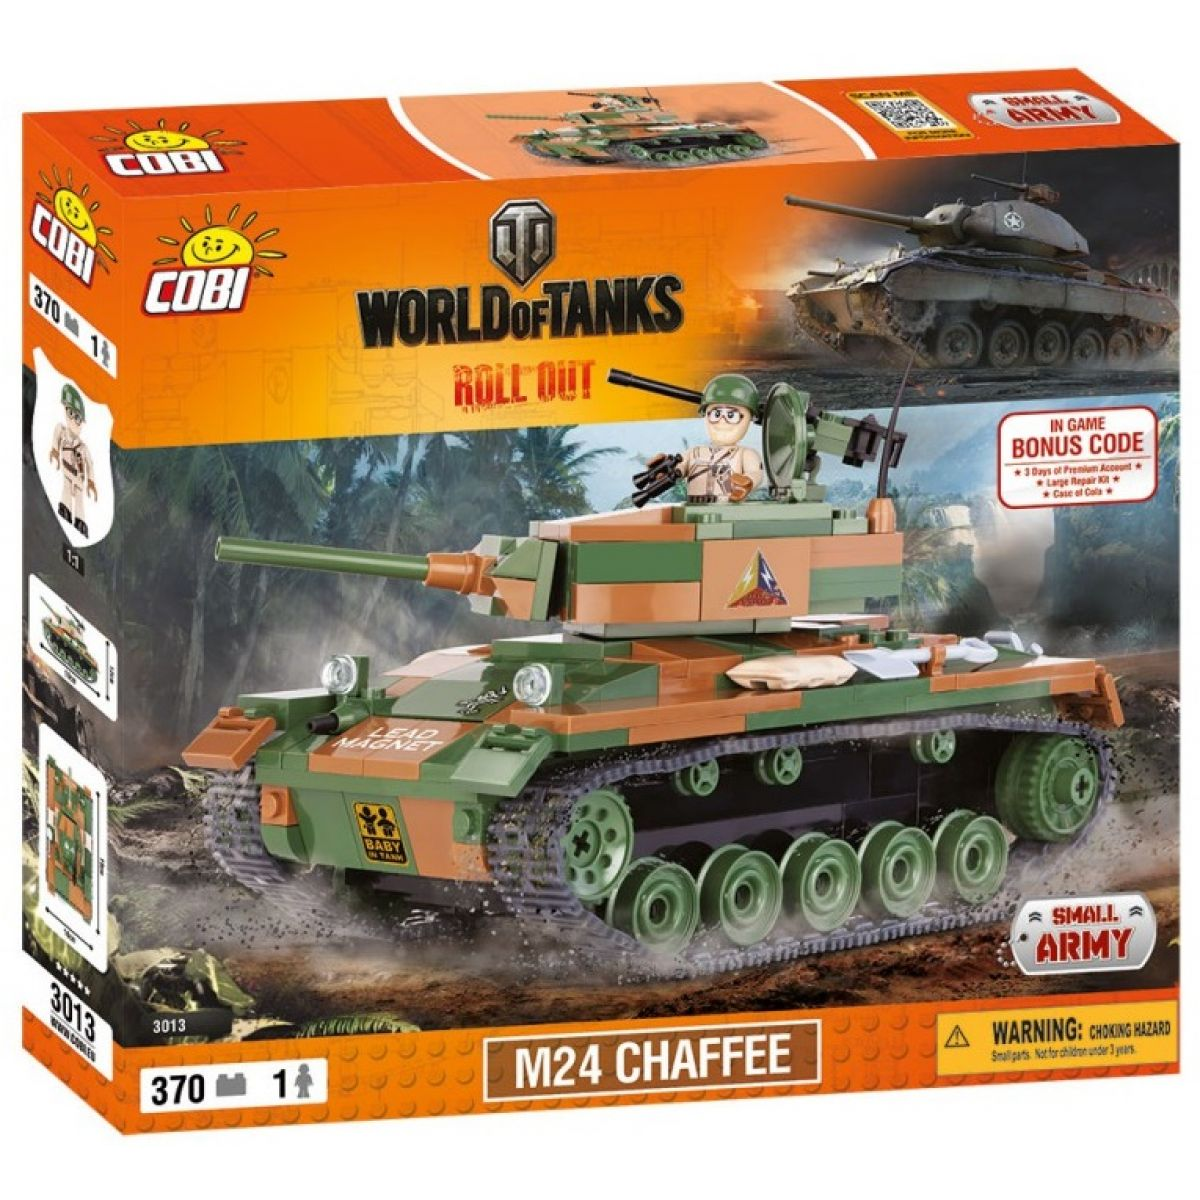 Cobi 3013 World of Tanks Tank M24 Chaffee